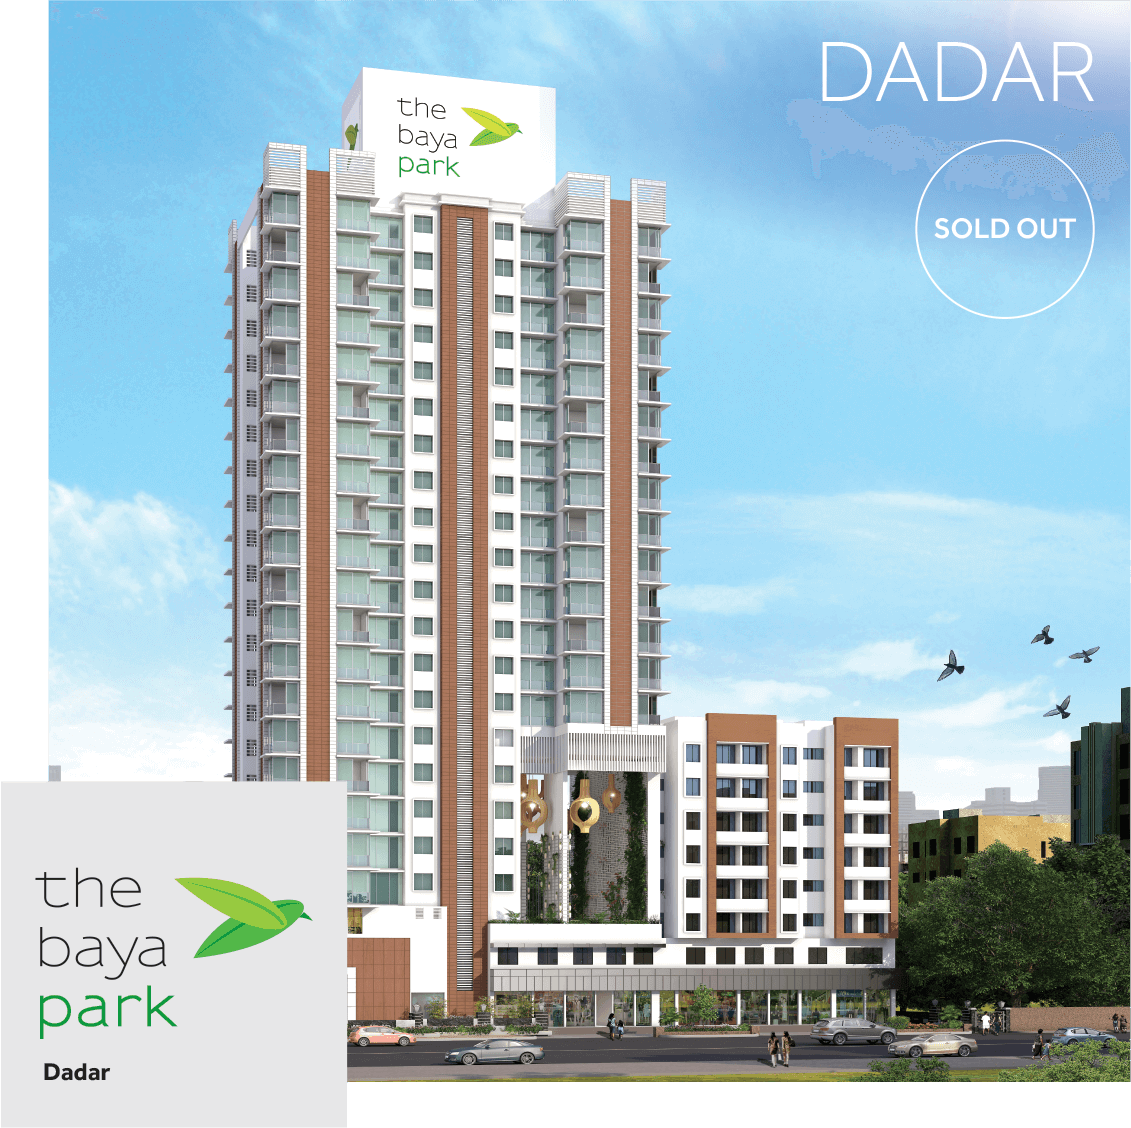 The Baya Park Dadar